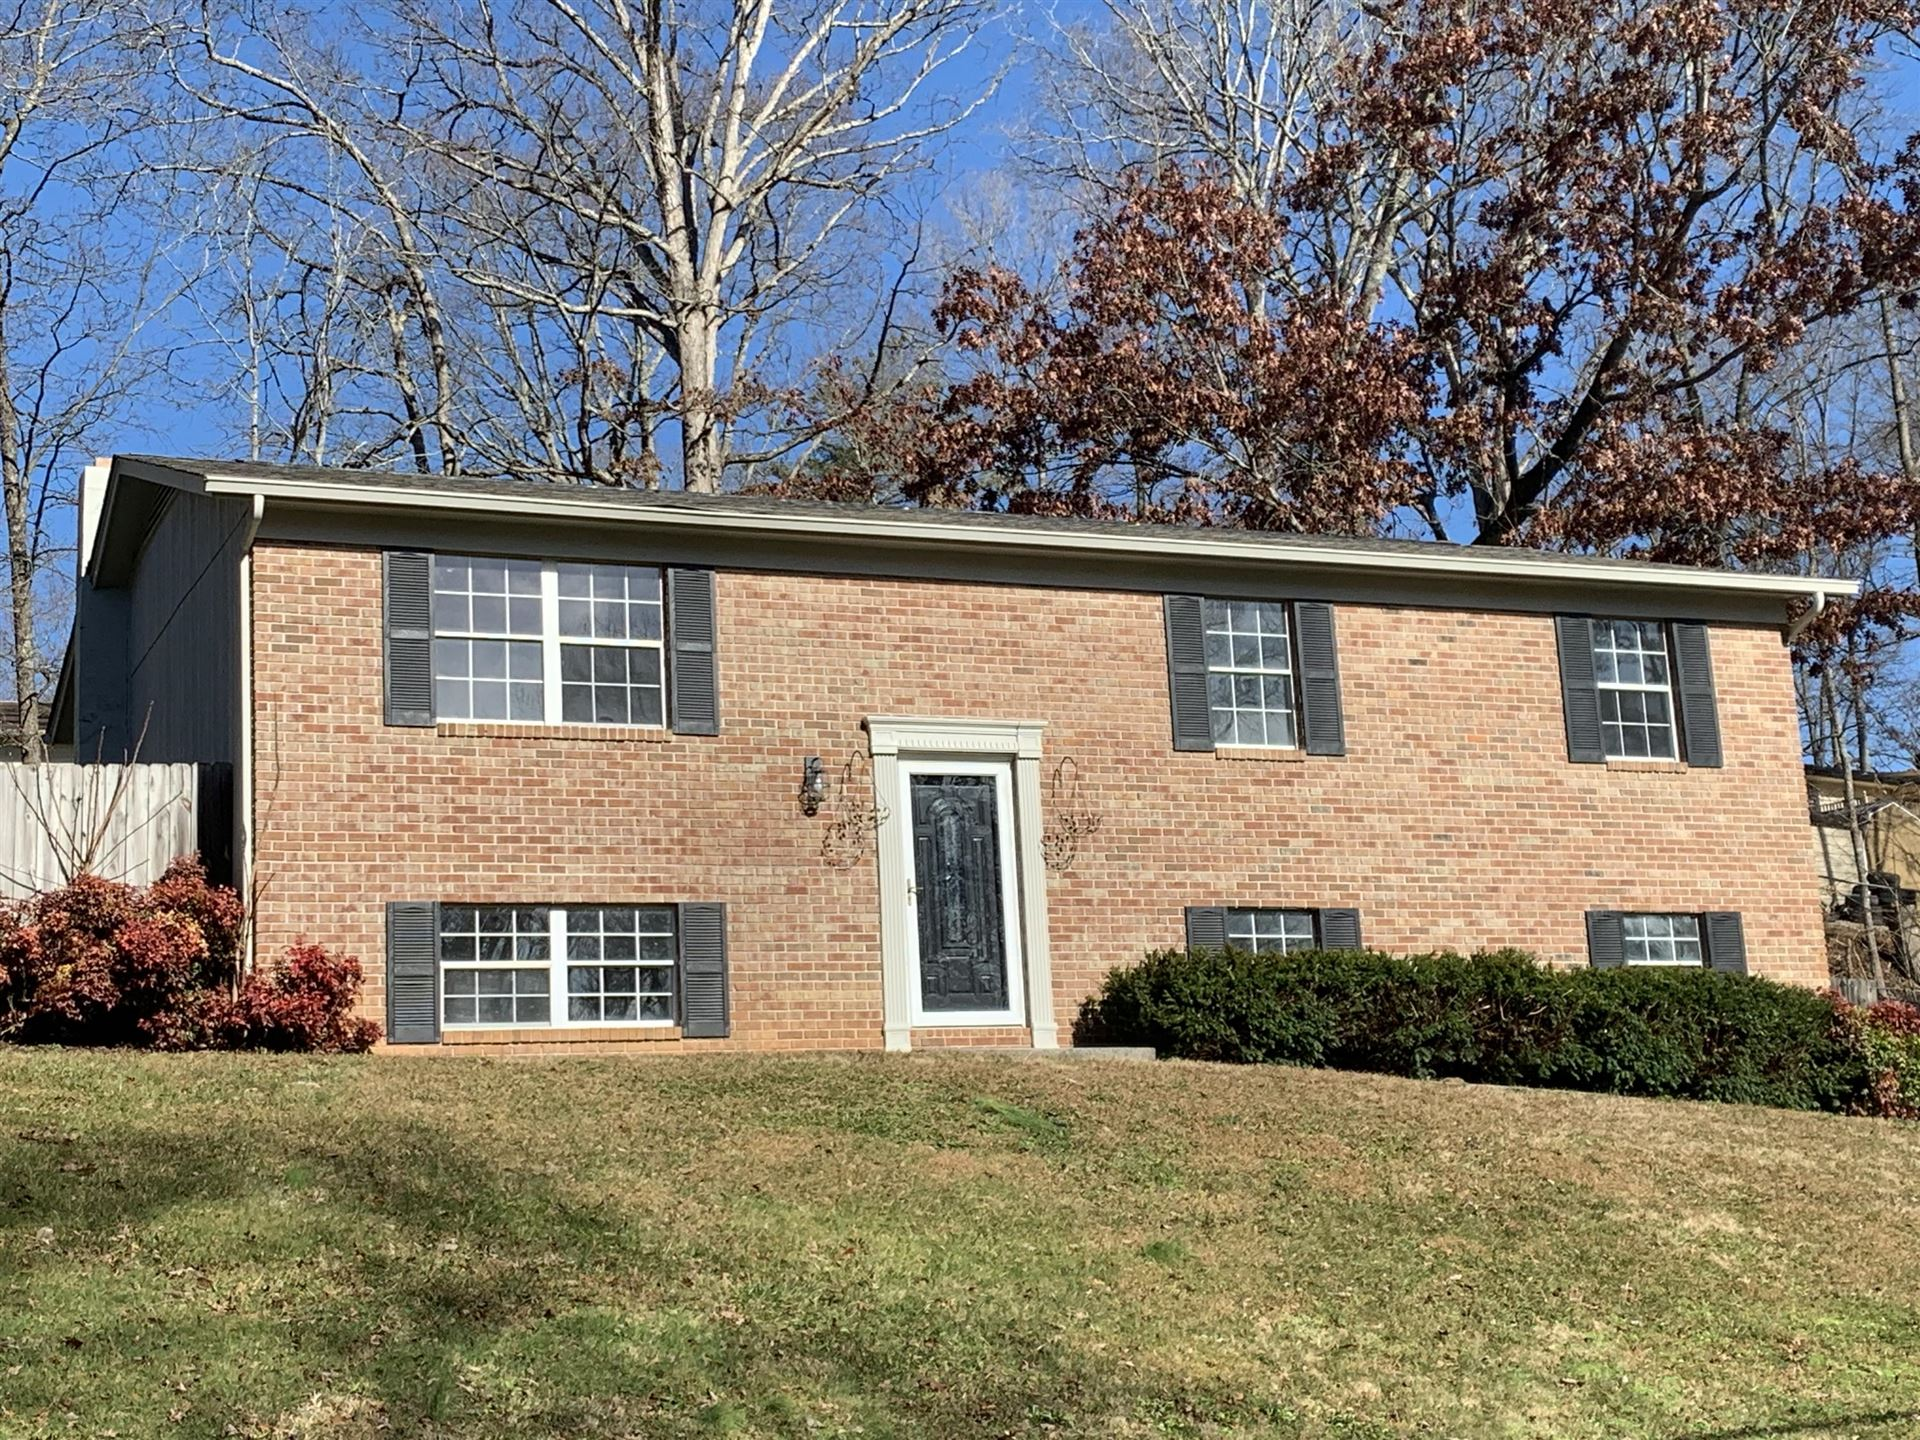 Photo of 4105 Inisbrook Way, Knoxville, TN 37938 (MLS # 1139169)